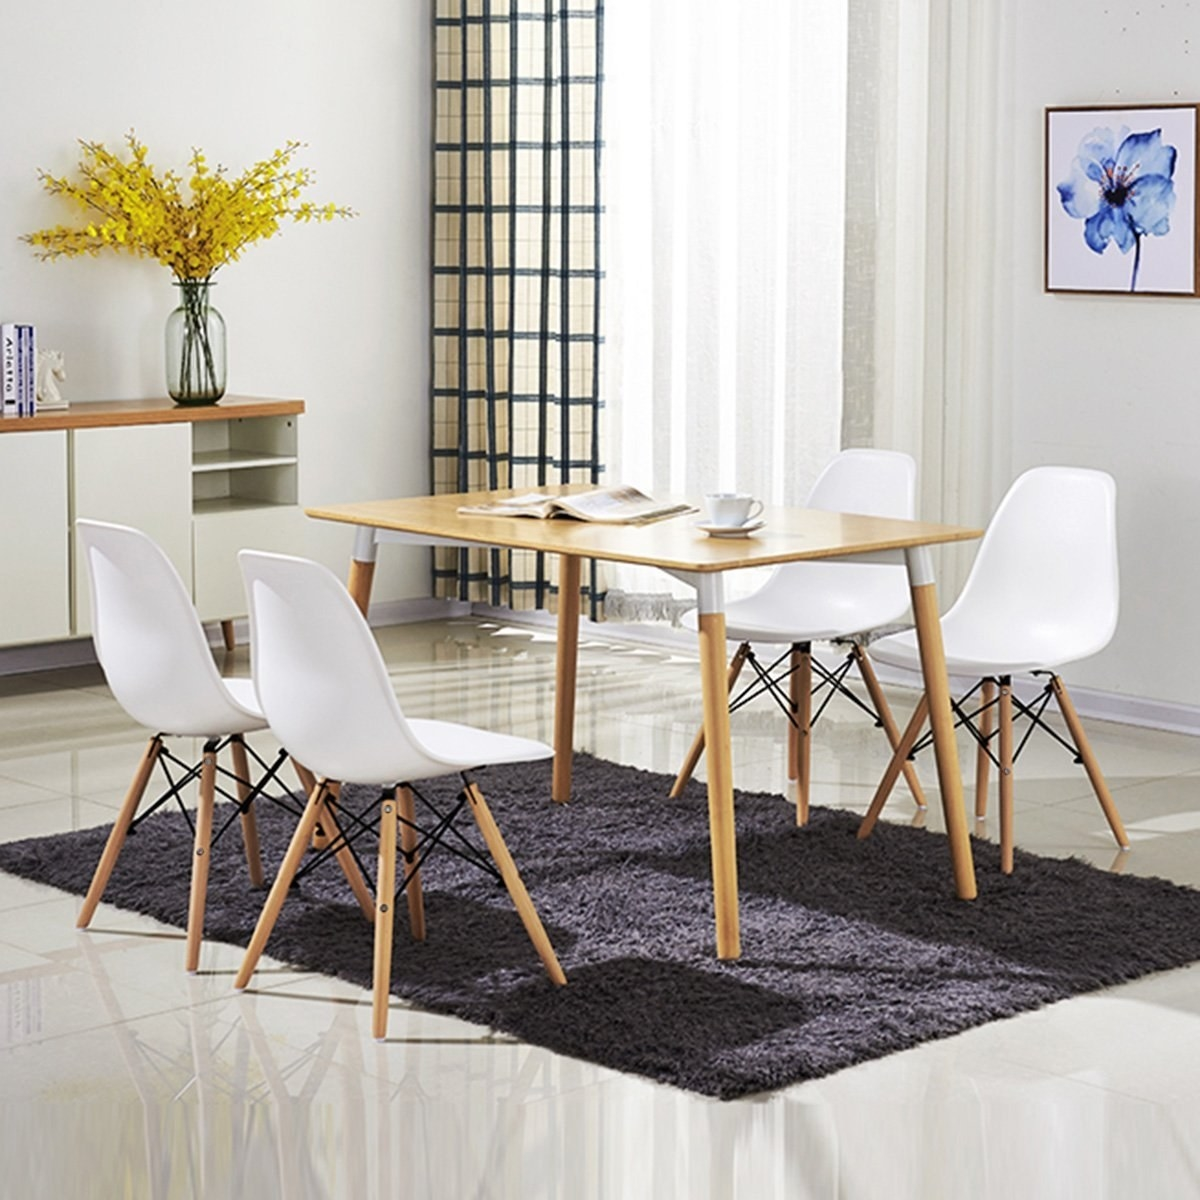 A Sleek Set Of Chairs That Could Pretty Much Only Cost Less If You Sat On  The Floor.